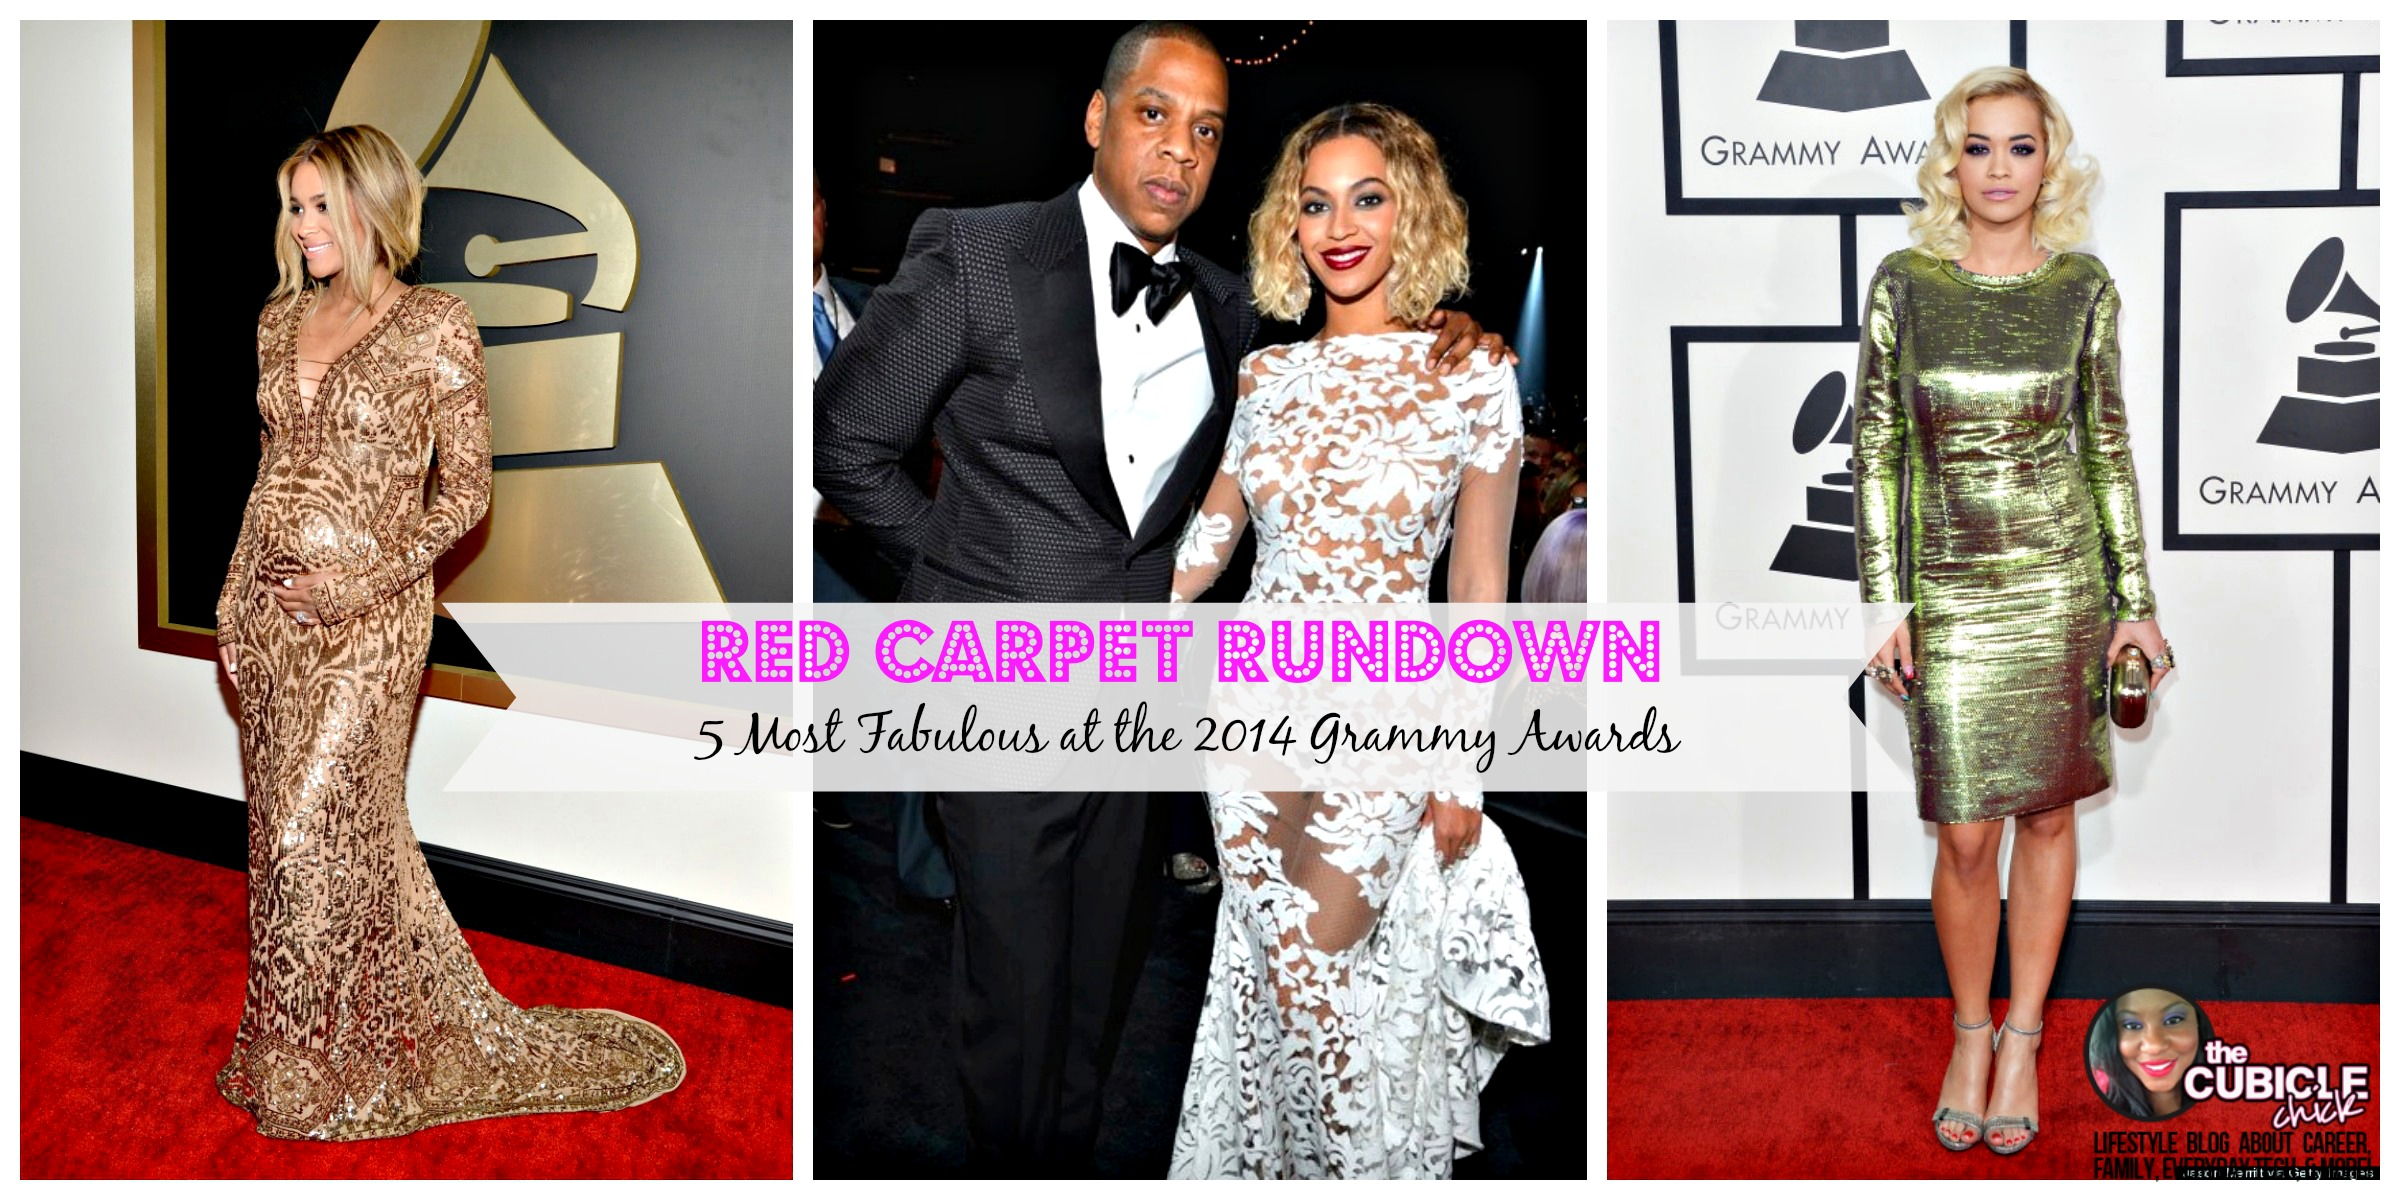 Red Carpet Rundown: 5 Most Fabulous at the 2014 Grammy Awards